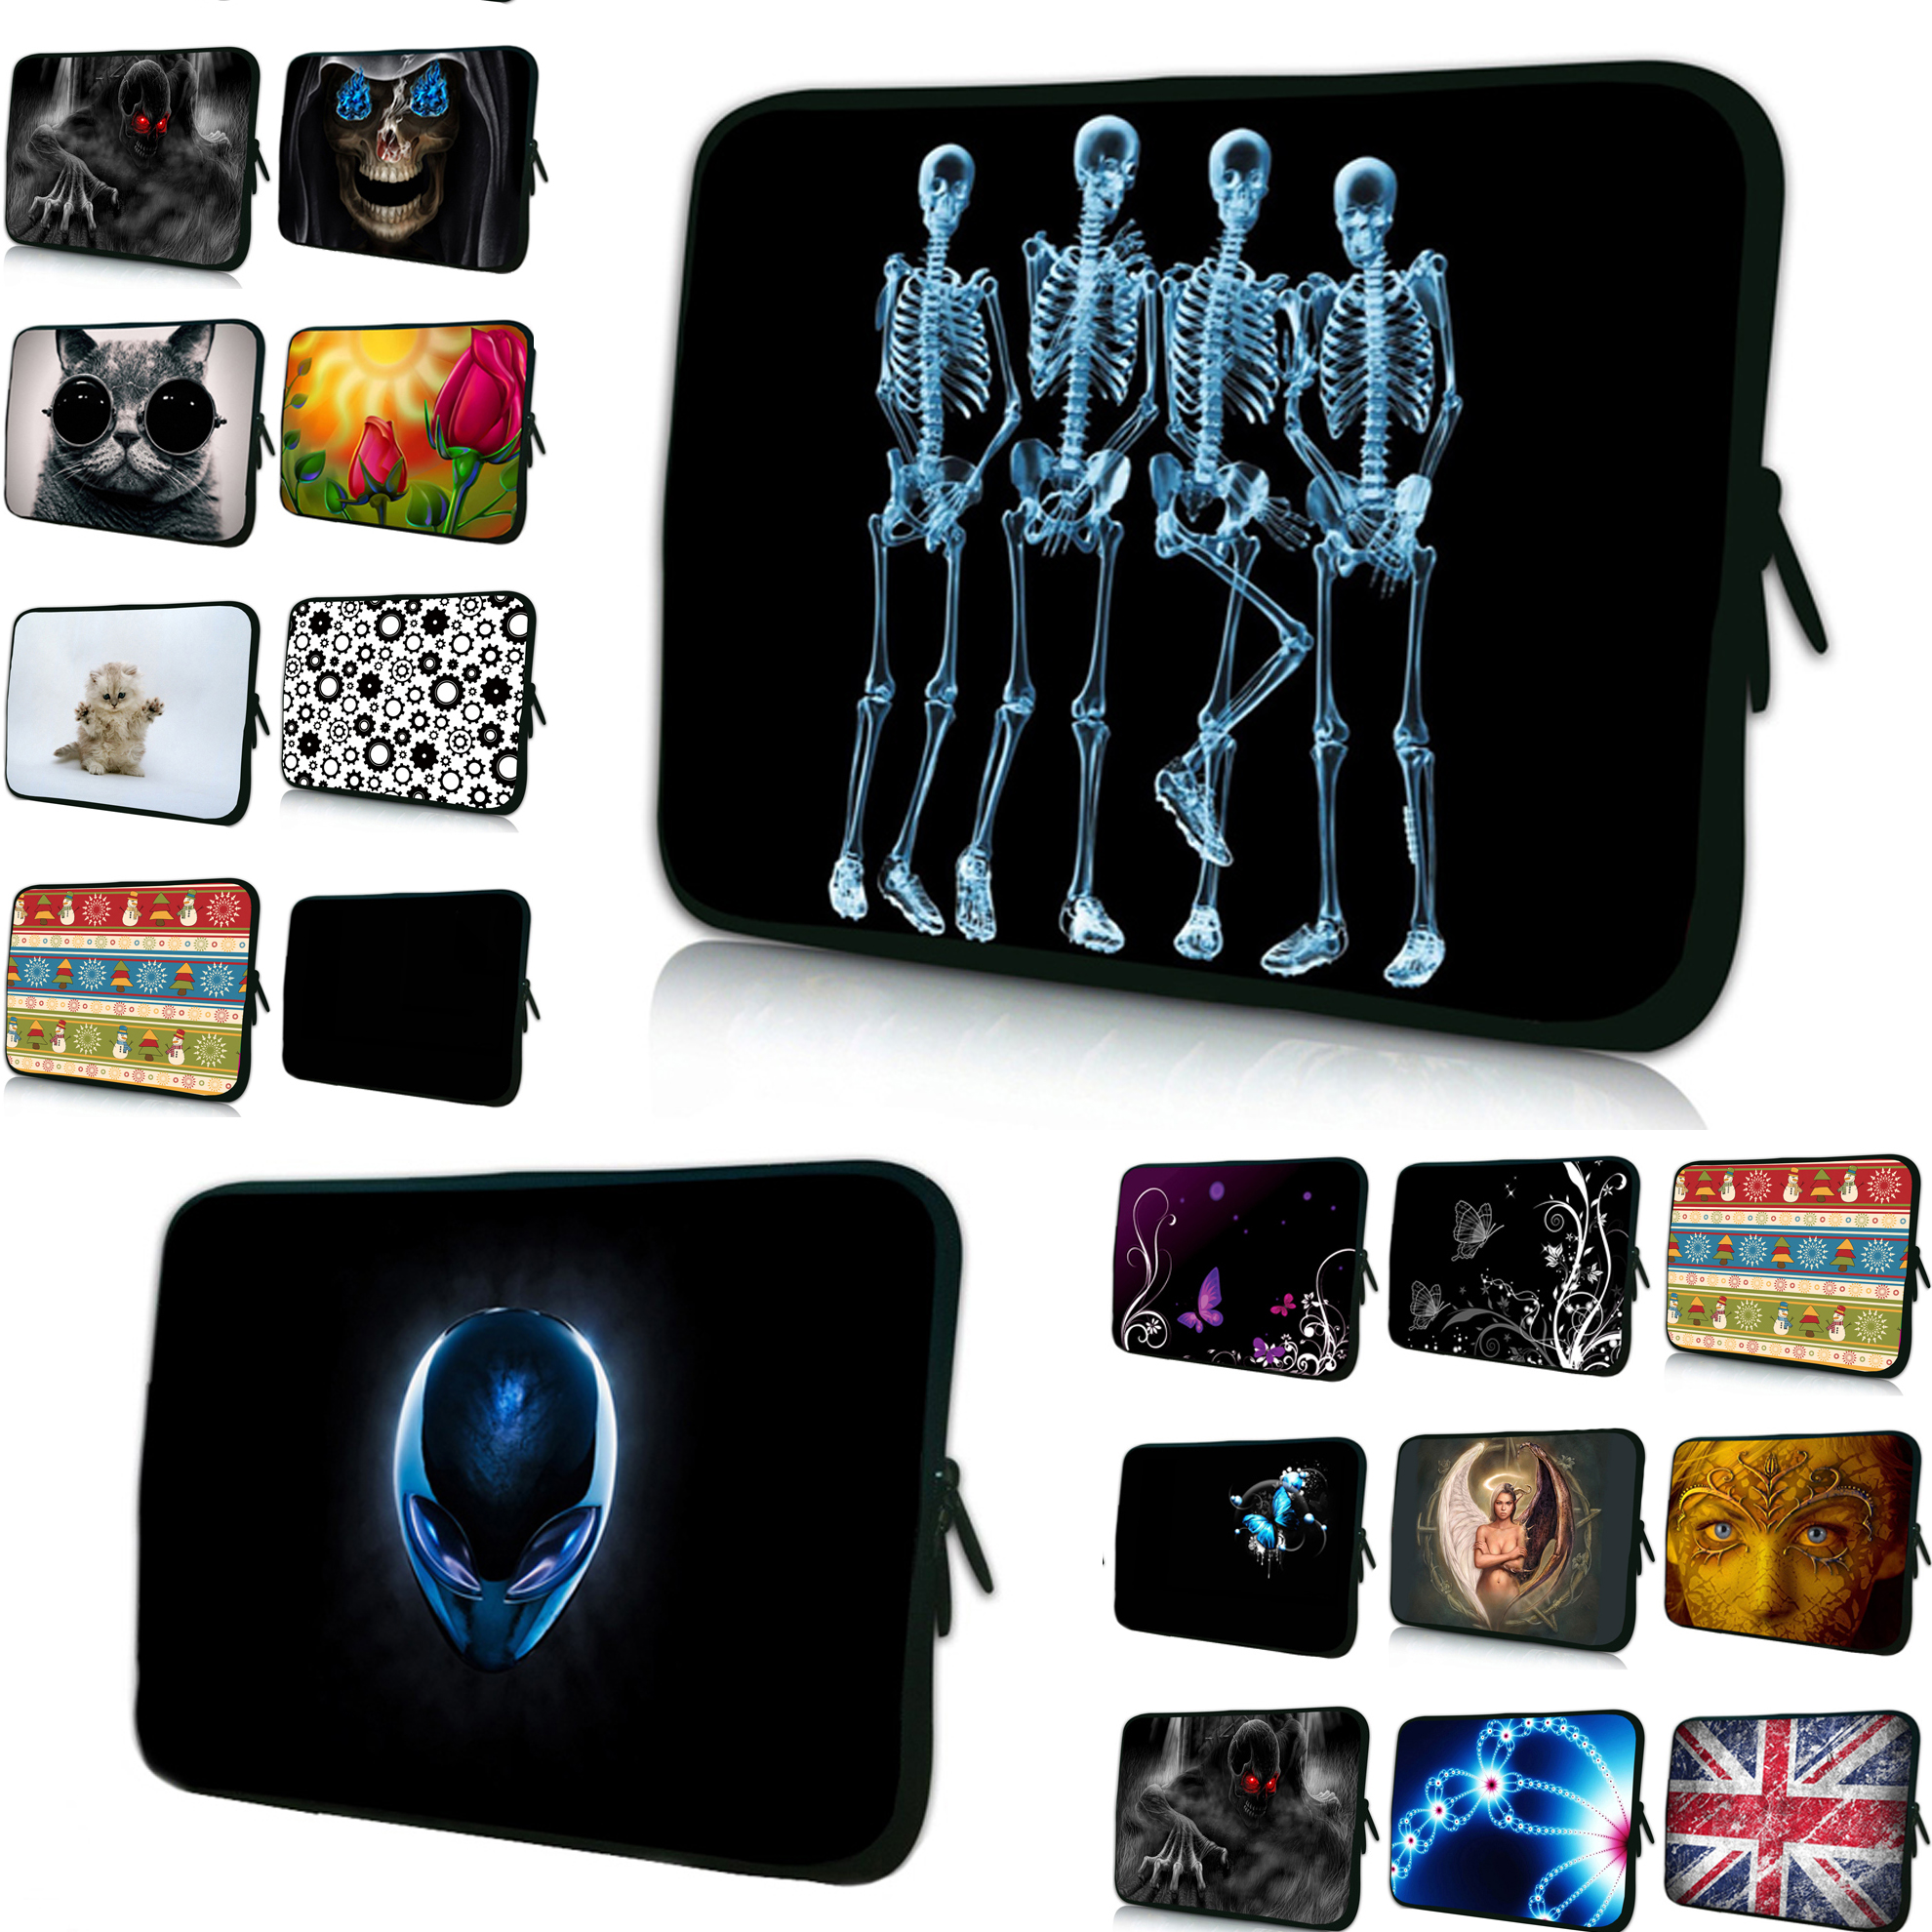 Vogue Laptop Sleeve Bag Cover Cases Zippers 7 10 12 11.6 13.3 14 15 17 Notebook Bags Pouch For Chuwi Tab 10,1 Acer Lenovo HP IBM